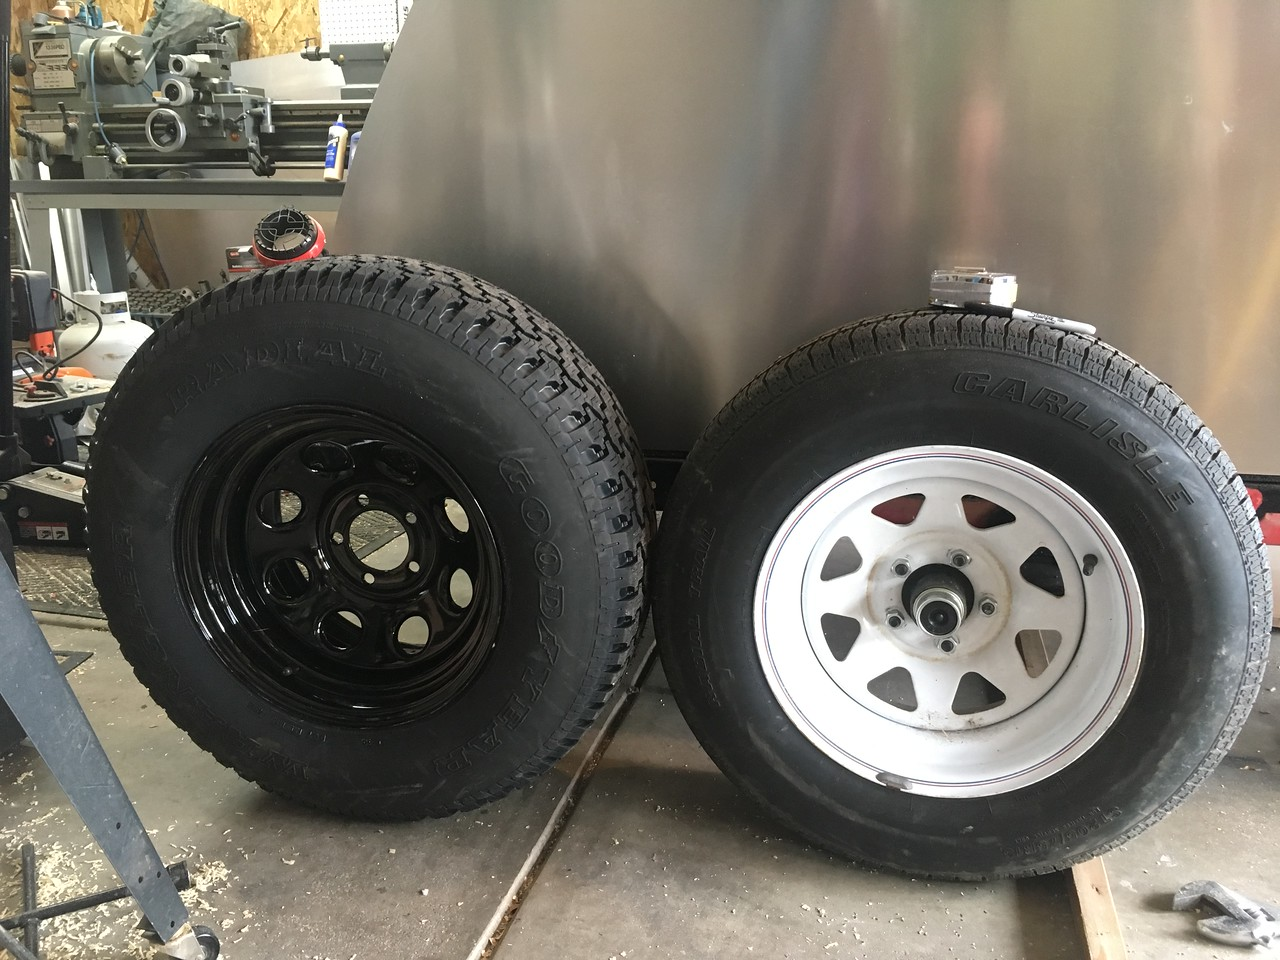 The trailer tires just look wimpy and cheap in comparison